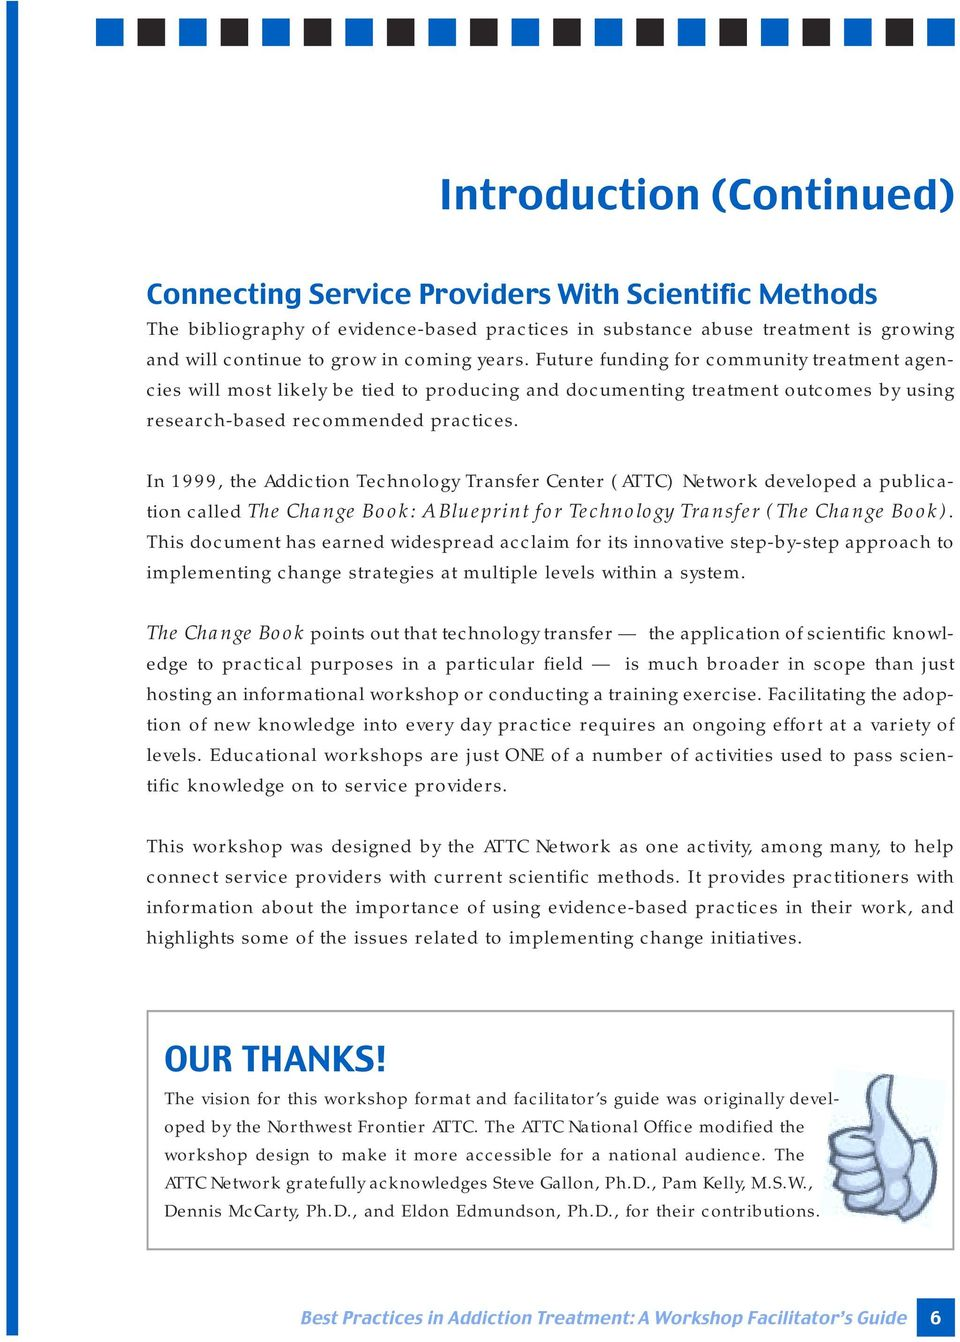 In 1999, the Addiction Technology Transfer Center (ATTC) Network developed a publication called The Change Book: A Blueprint for Technology Transfer (The Change Book).